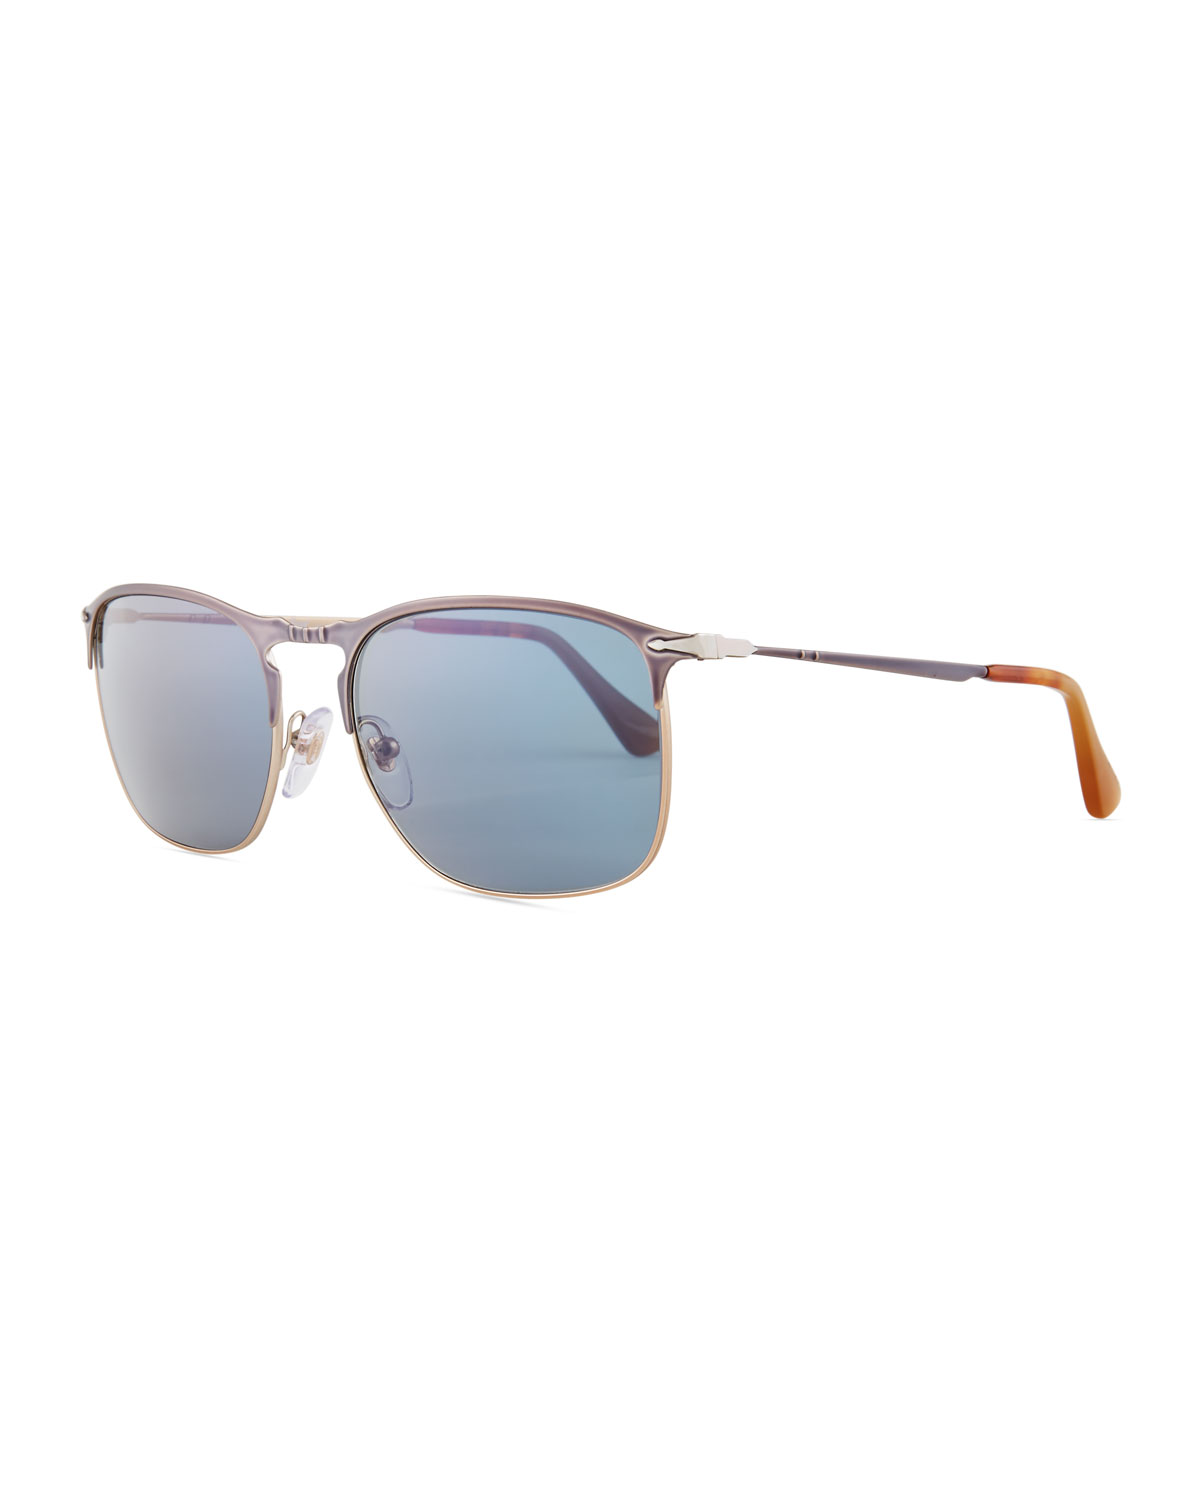 8ae32ae23f4 Persol PO7359S Polarized Rectangular Sunglasses